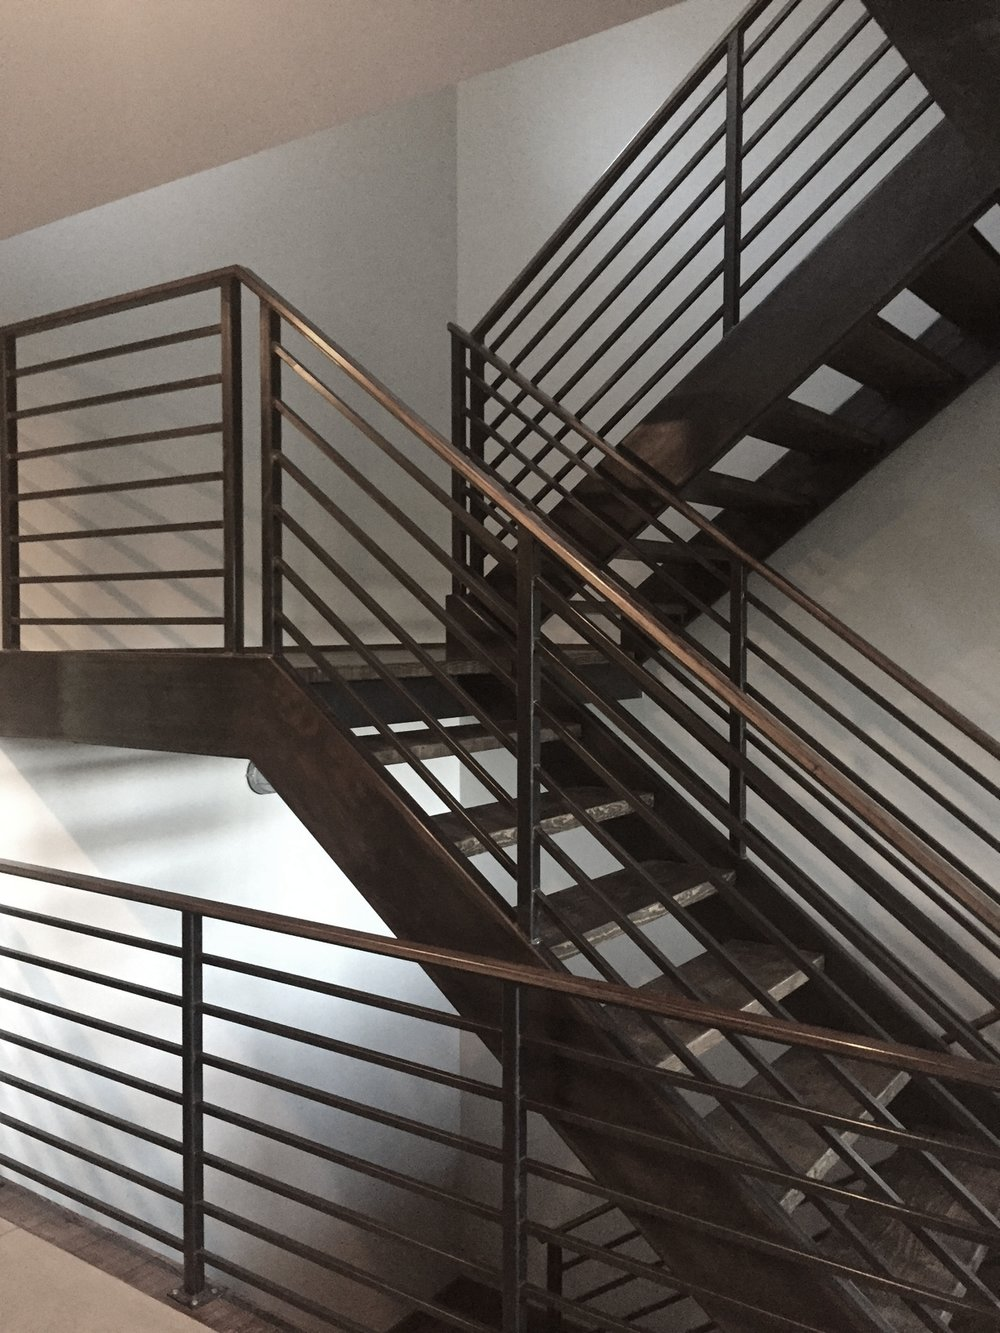 Steel stairs, landing, guardrails and handrails